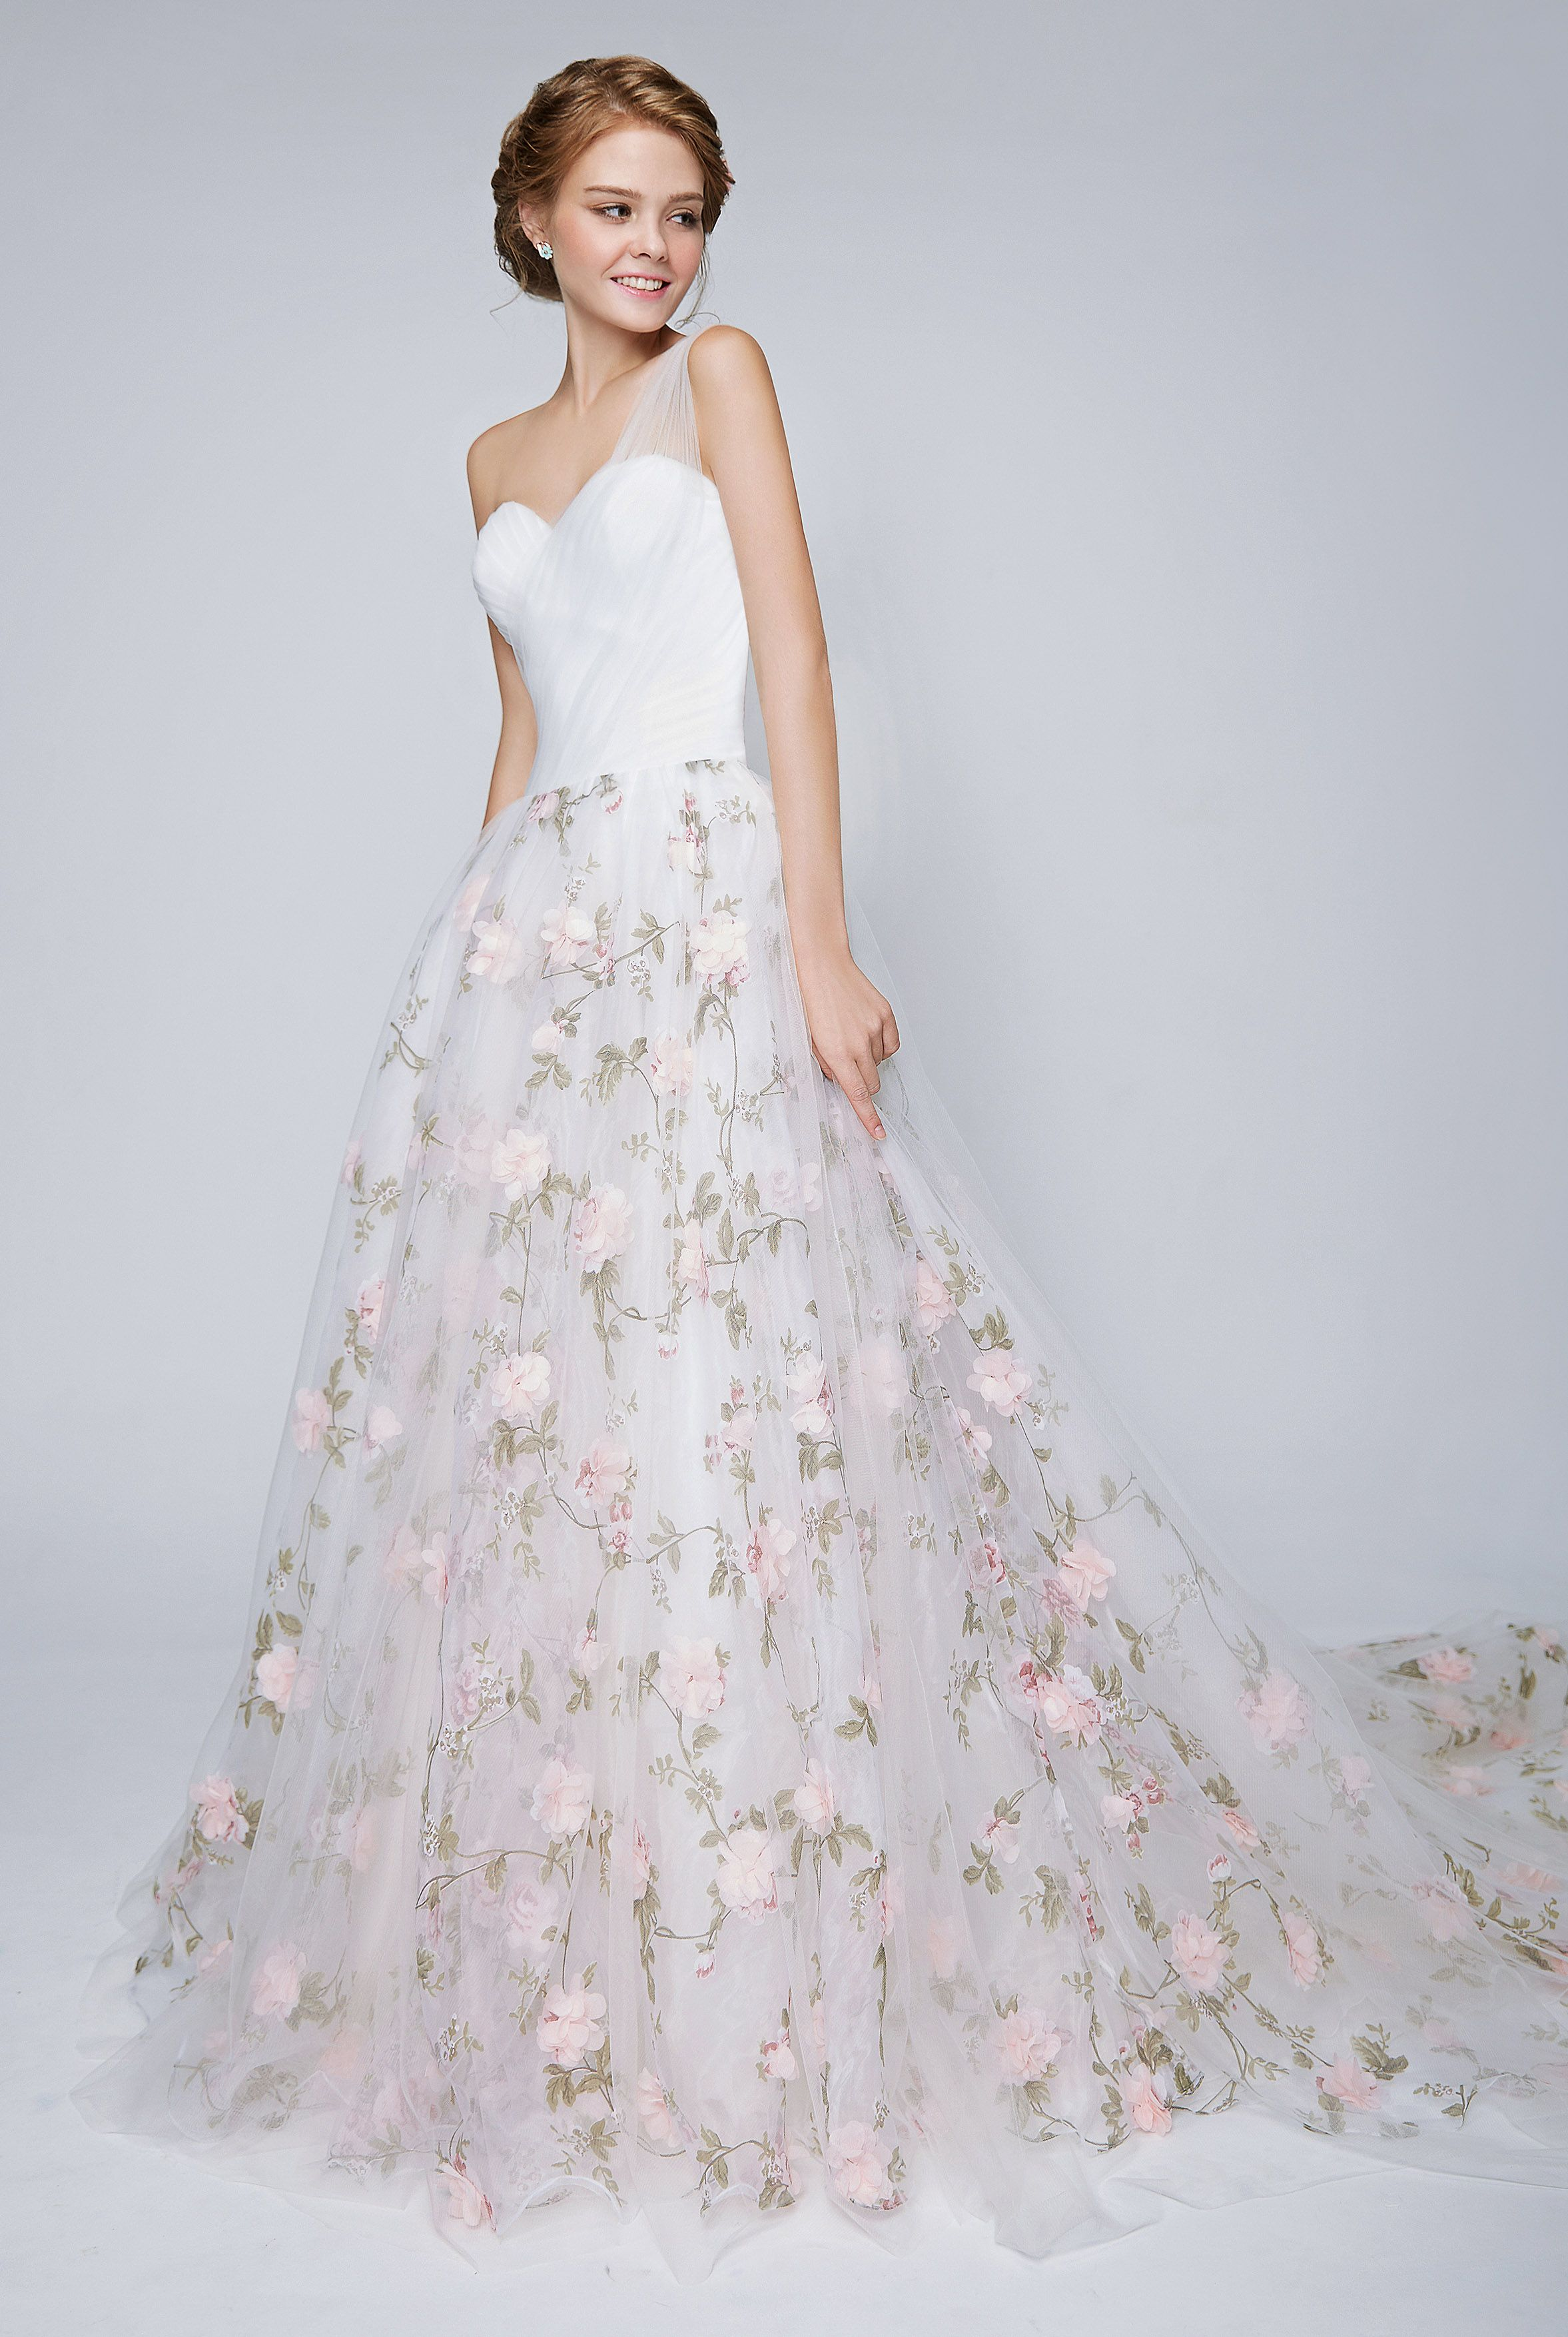 90266e41ee Pretty in Floral | Floral Wedding Dresses Bridal Boutique Singapore |  Wedding Gown Singapore | Wedding Dress Singapore | Wedding Package  Singapore | Wedding ...